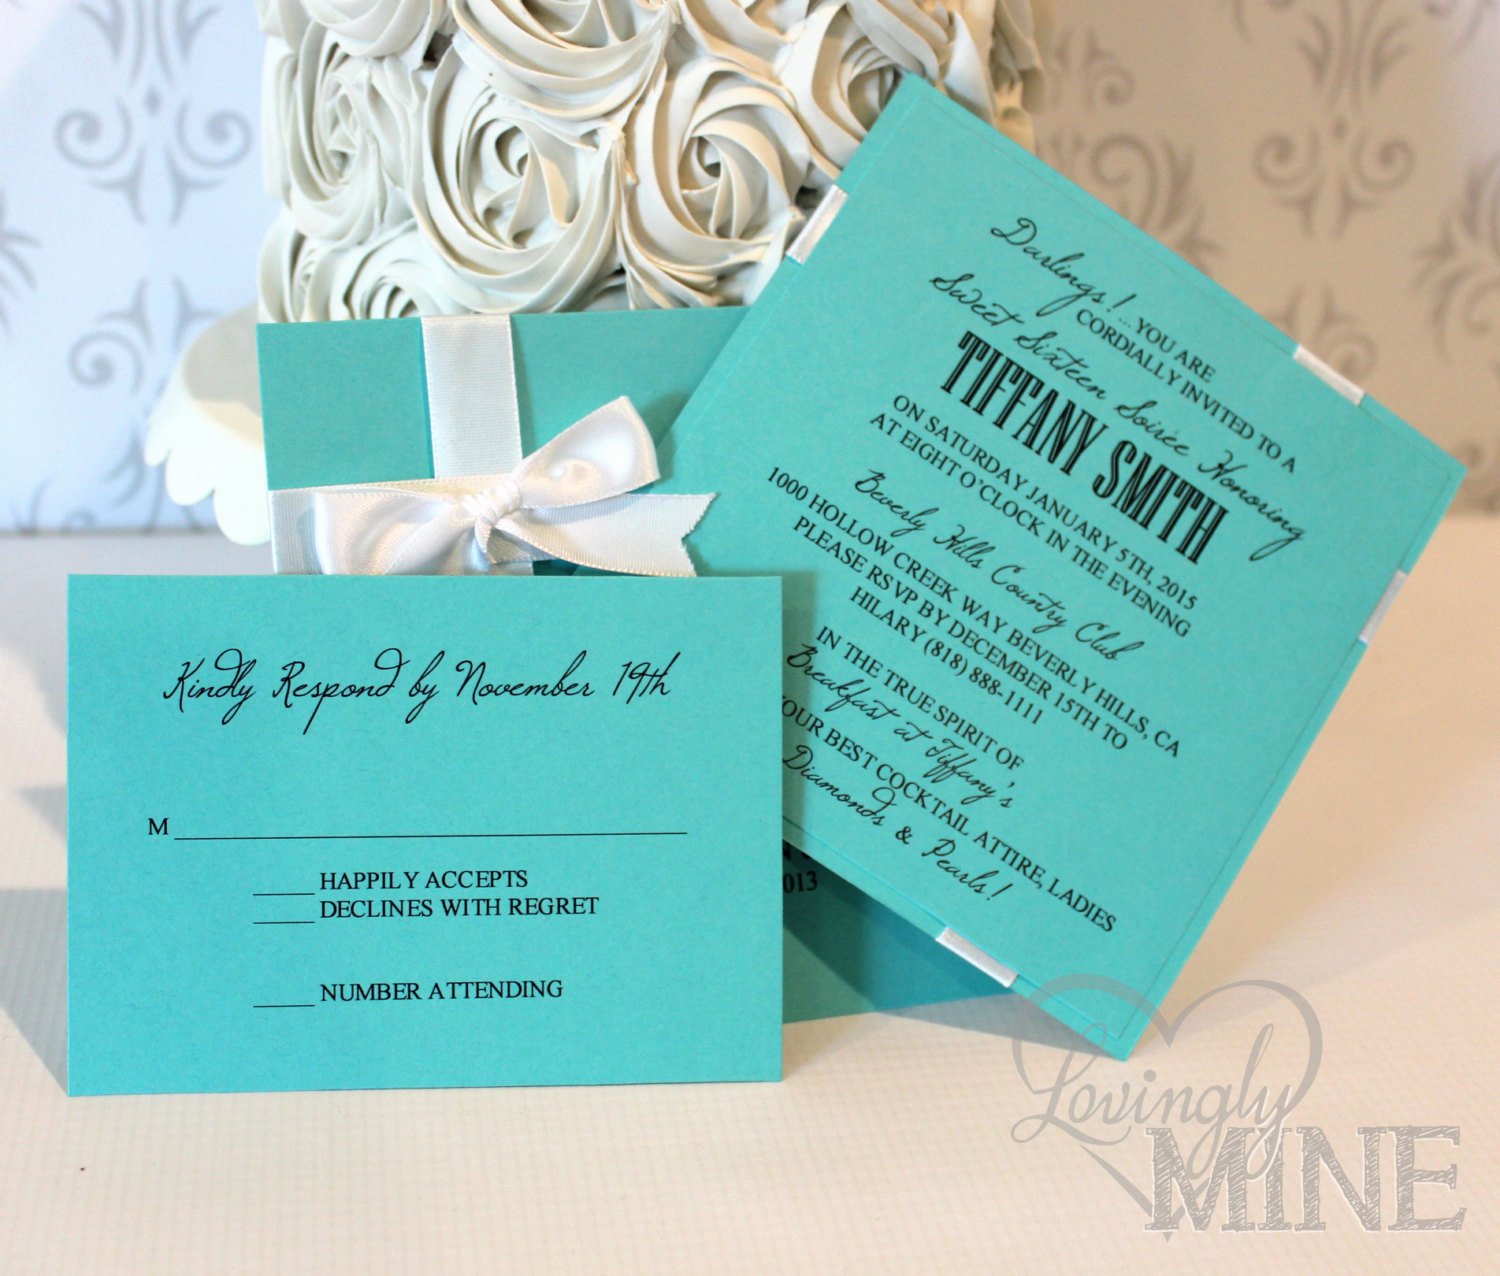 Sweet 16 Invitation Template Best Of Sweet Sixteen Invitations with Rsvp Card Set Of 10